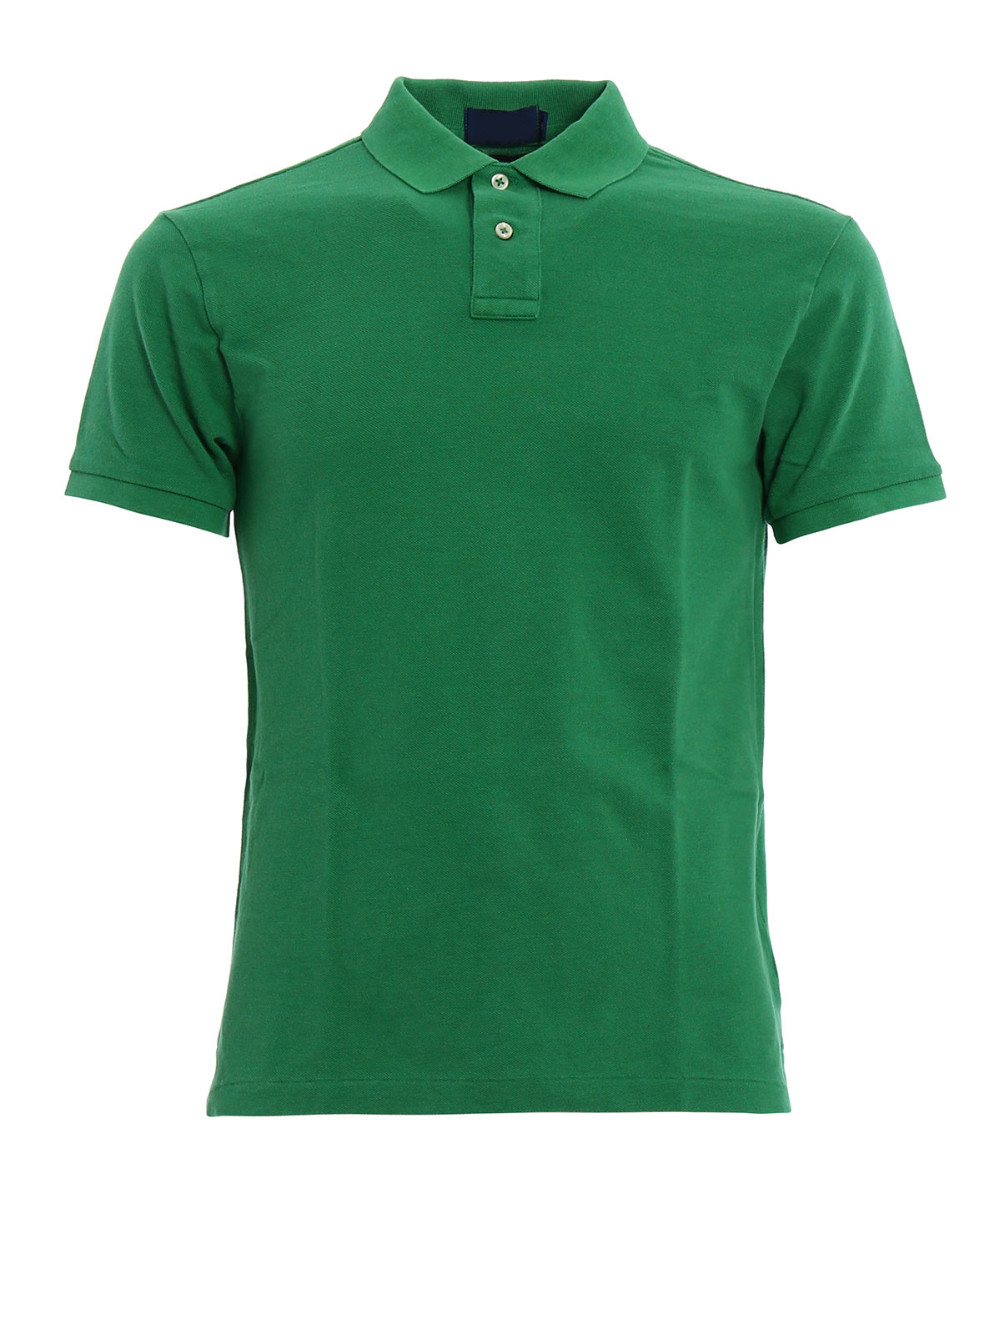 Color Block Polo Shirts For Mencool Dry Fit Golf Shirt Blank Couple